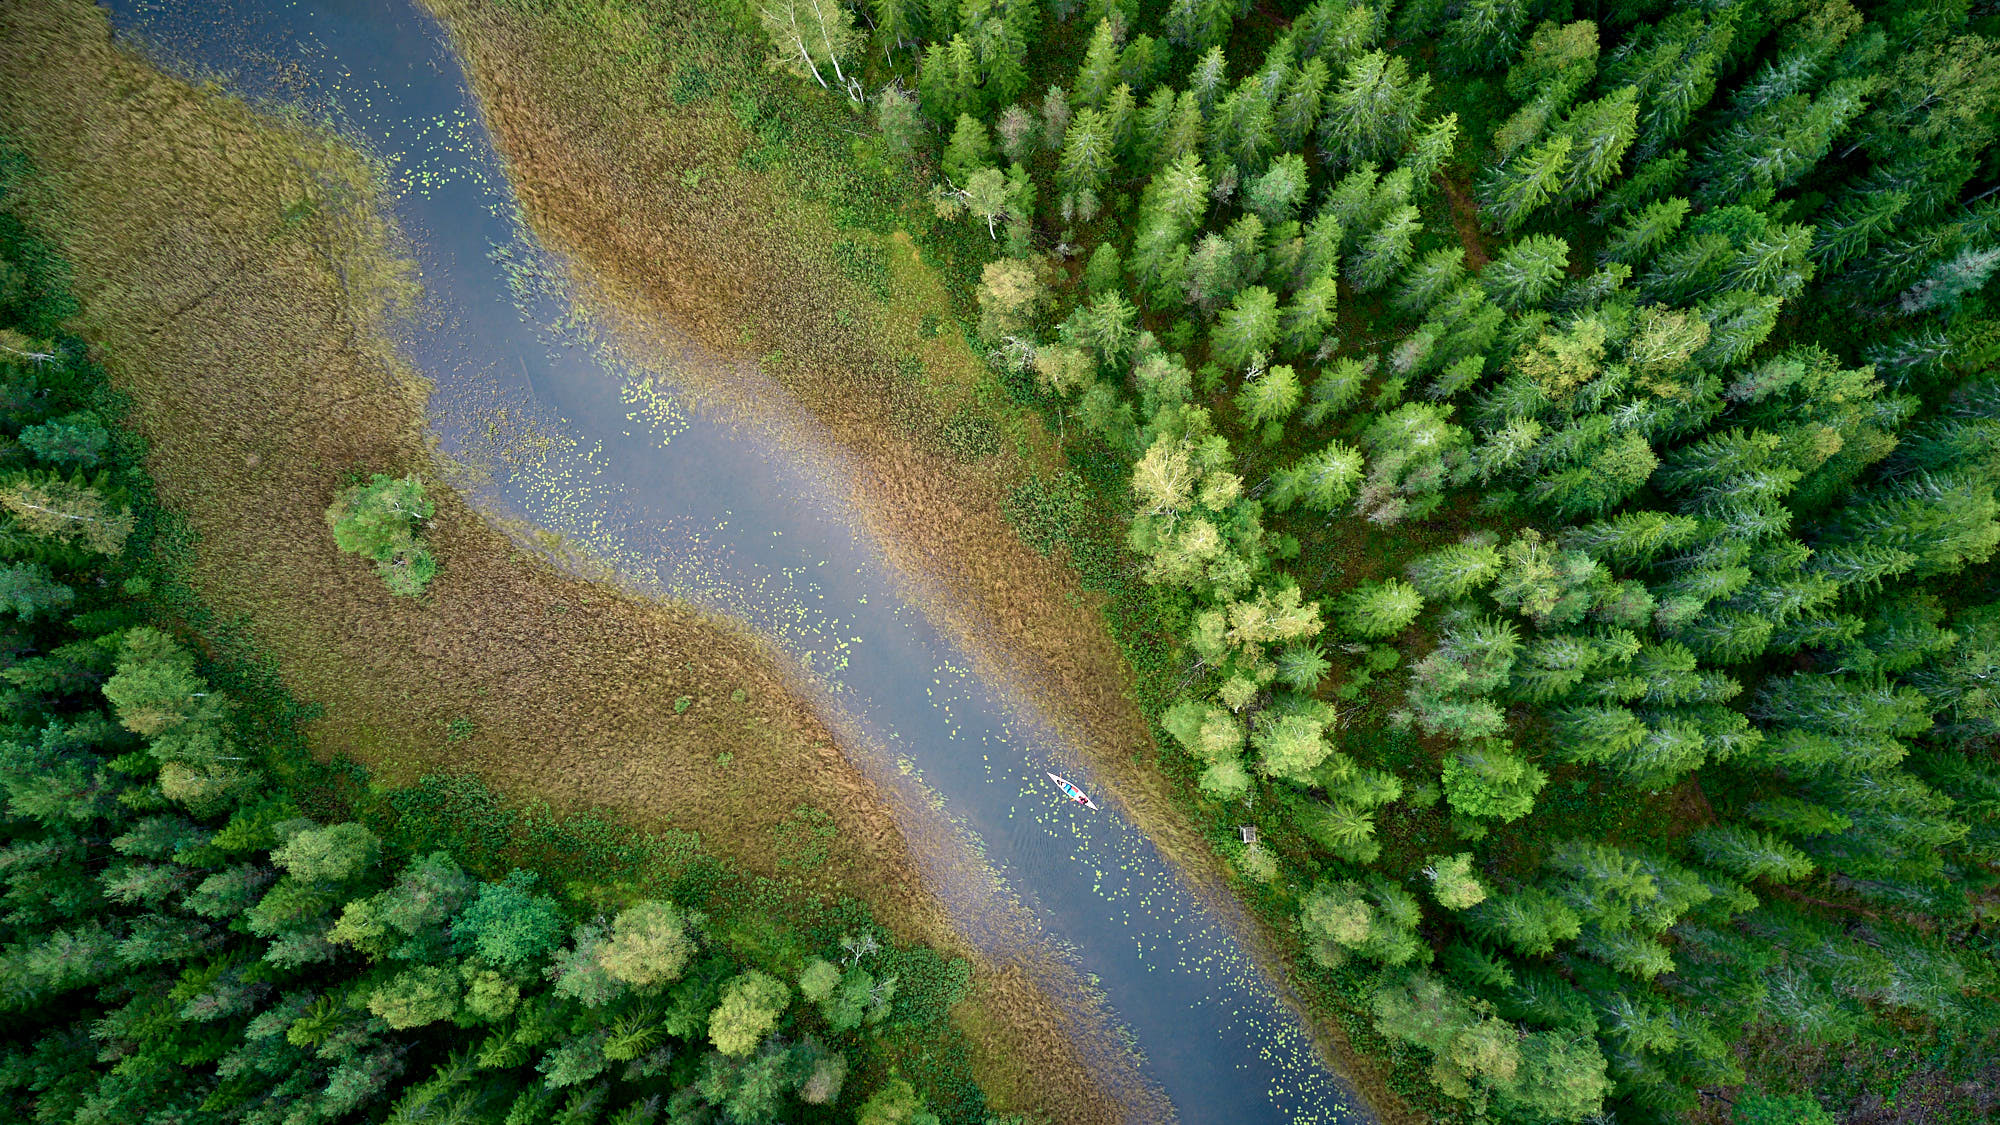 Aerial view of a canoe on a small river in Sweden